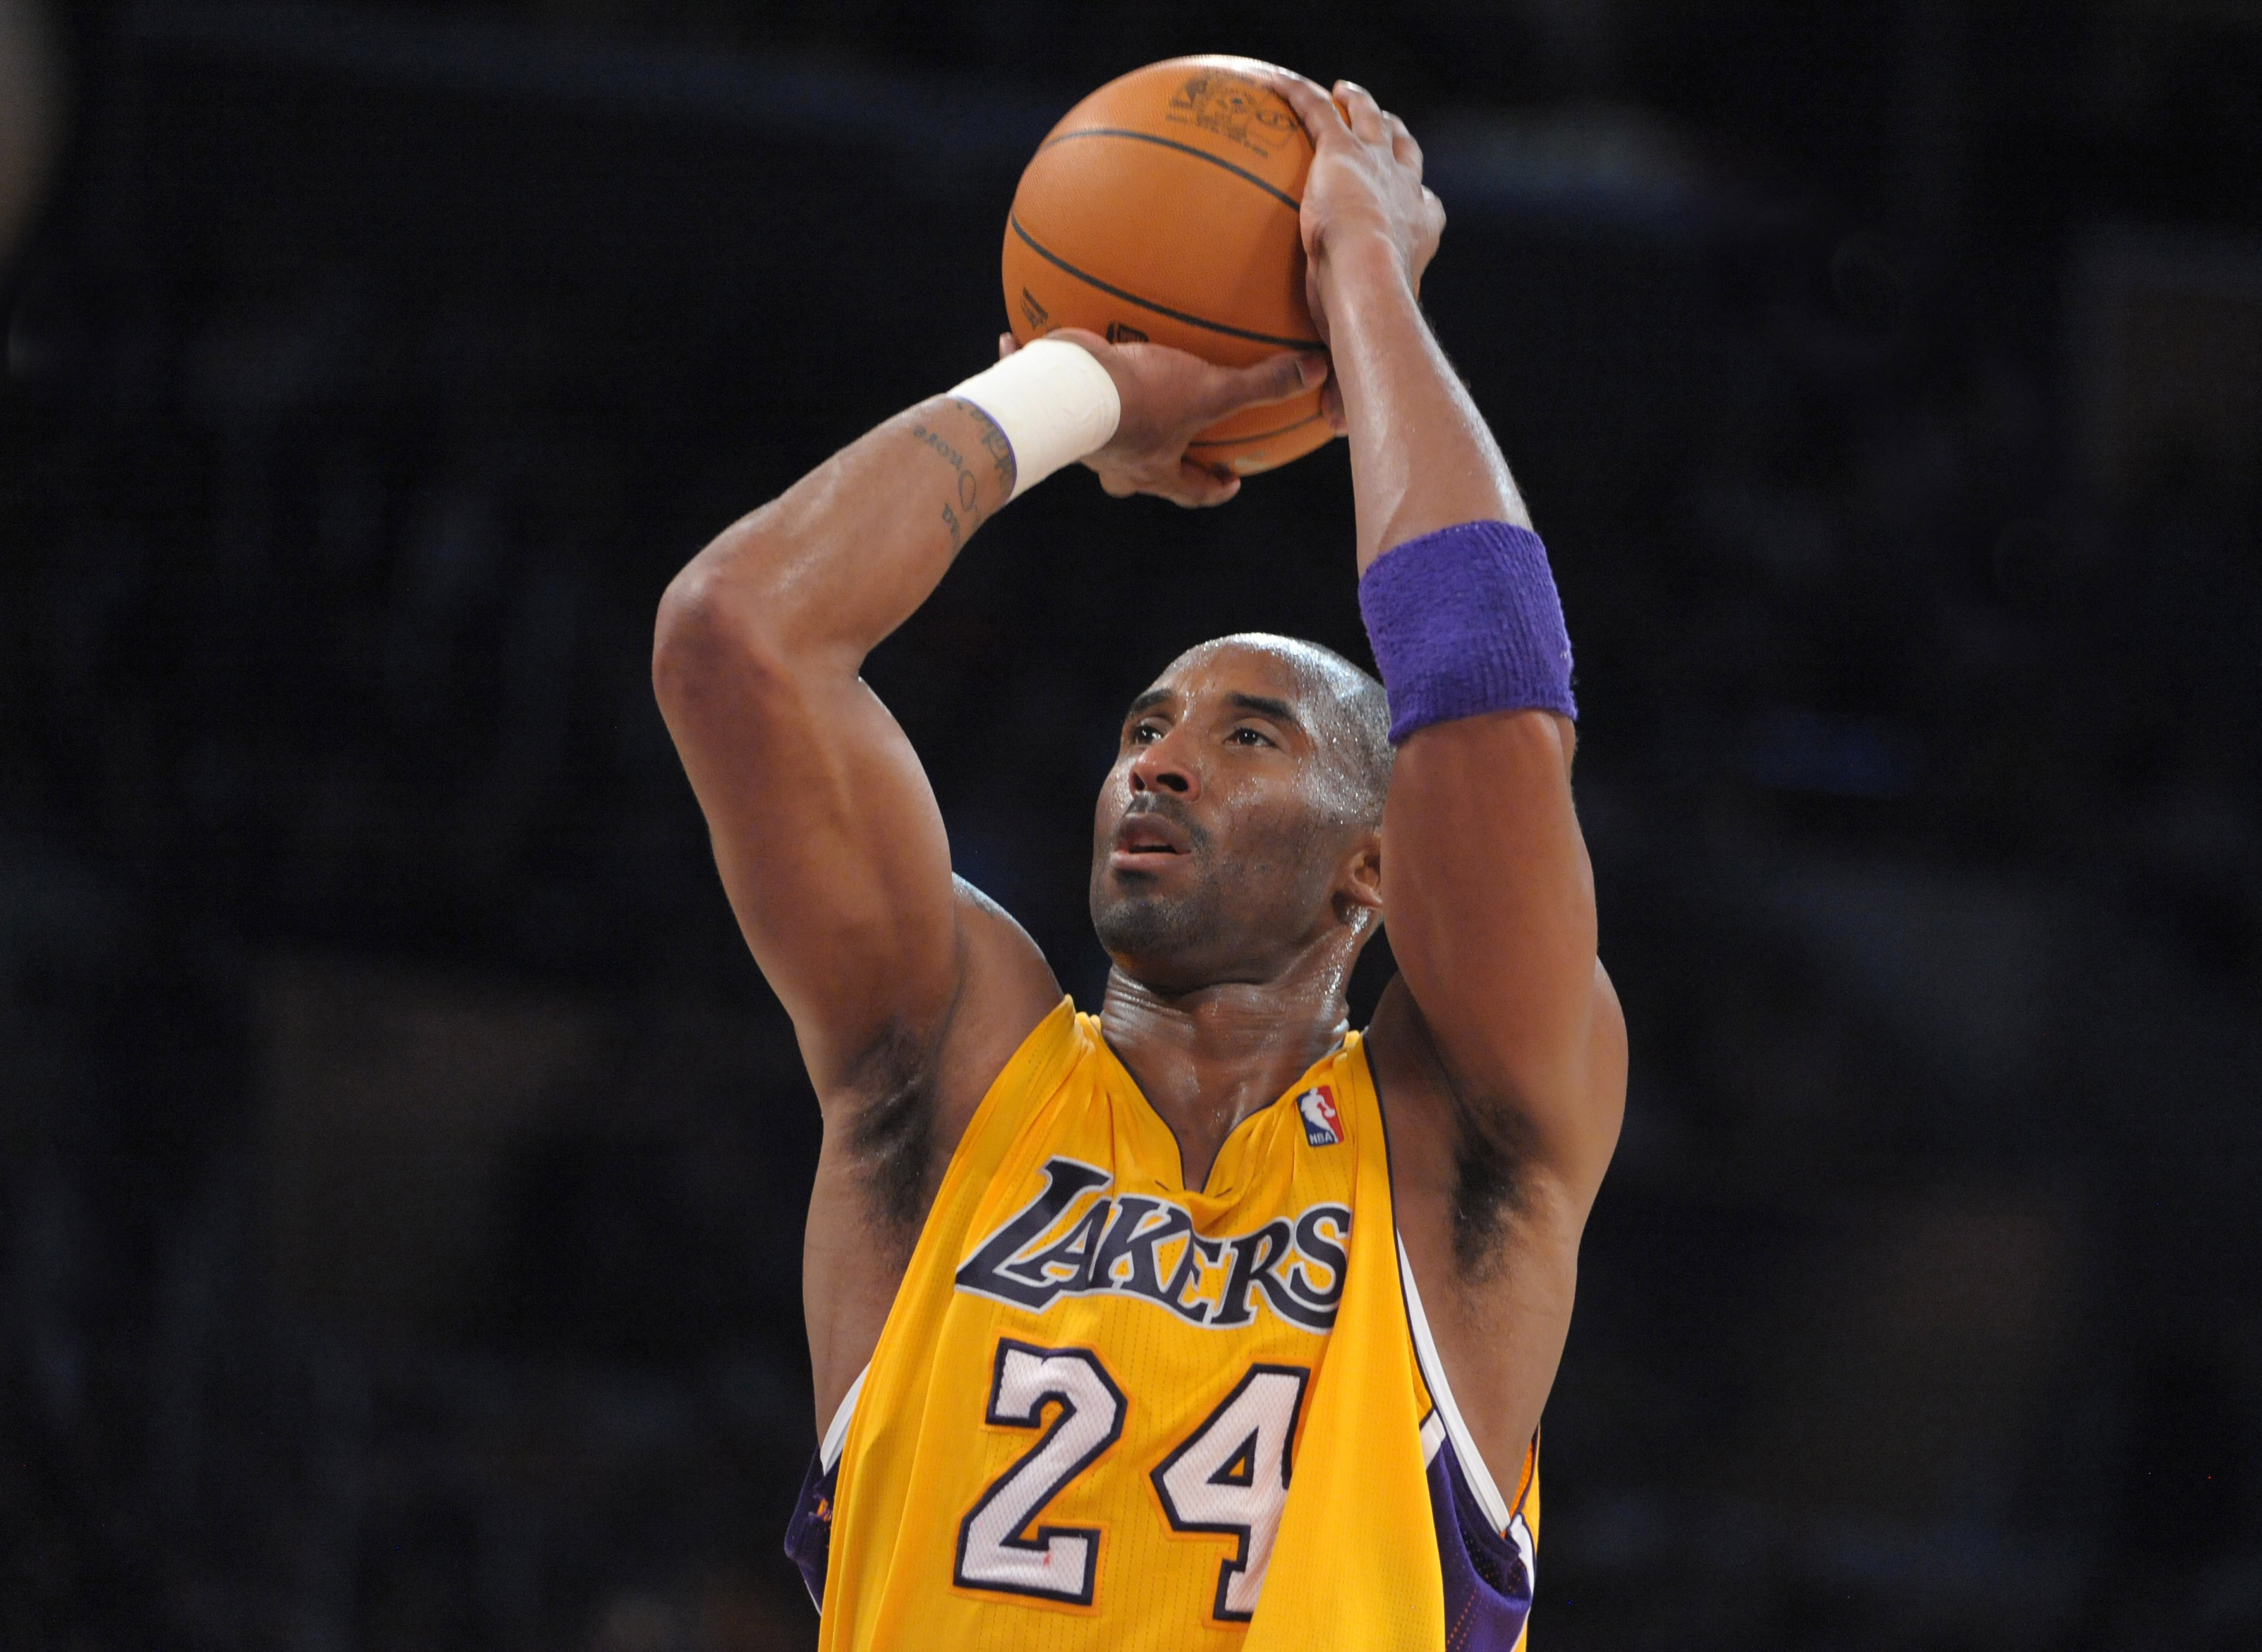 20 For 20: The Best Moments Of Kobe Bryant's Career